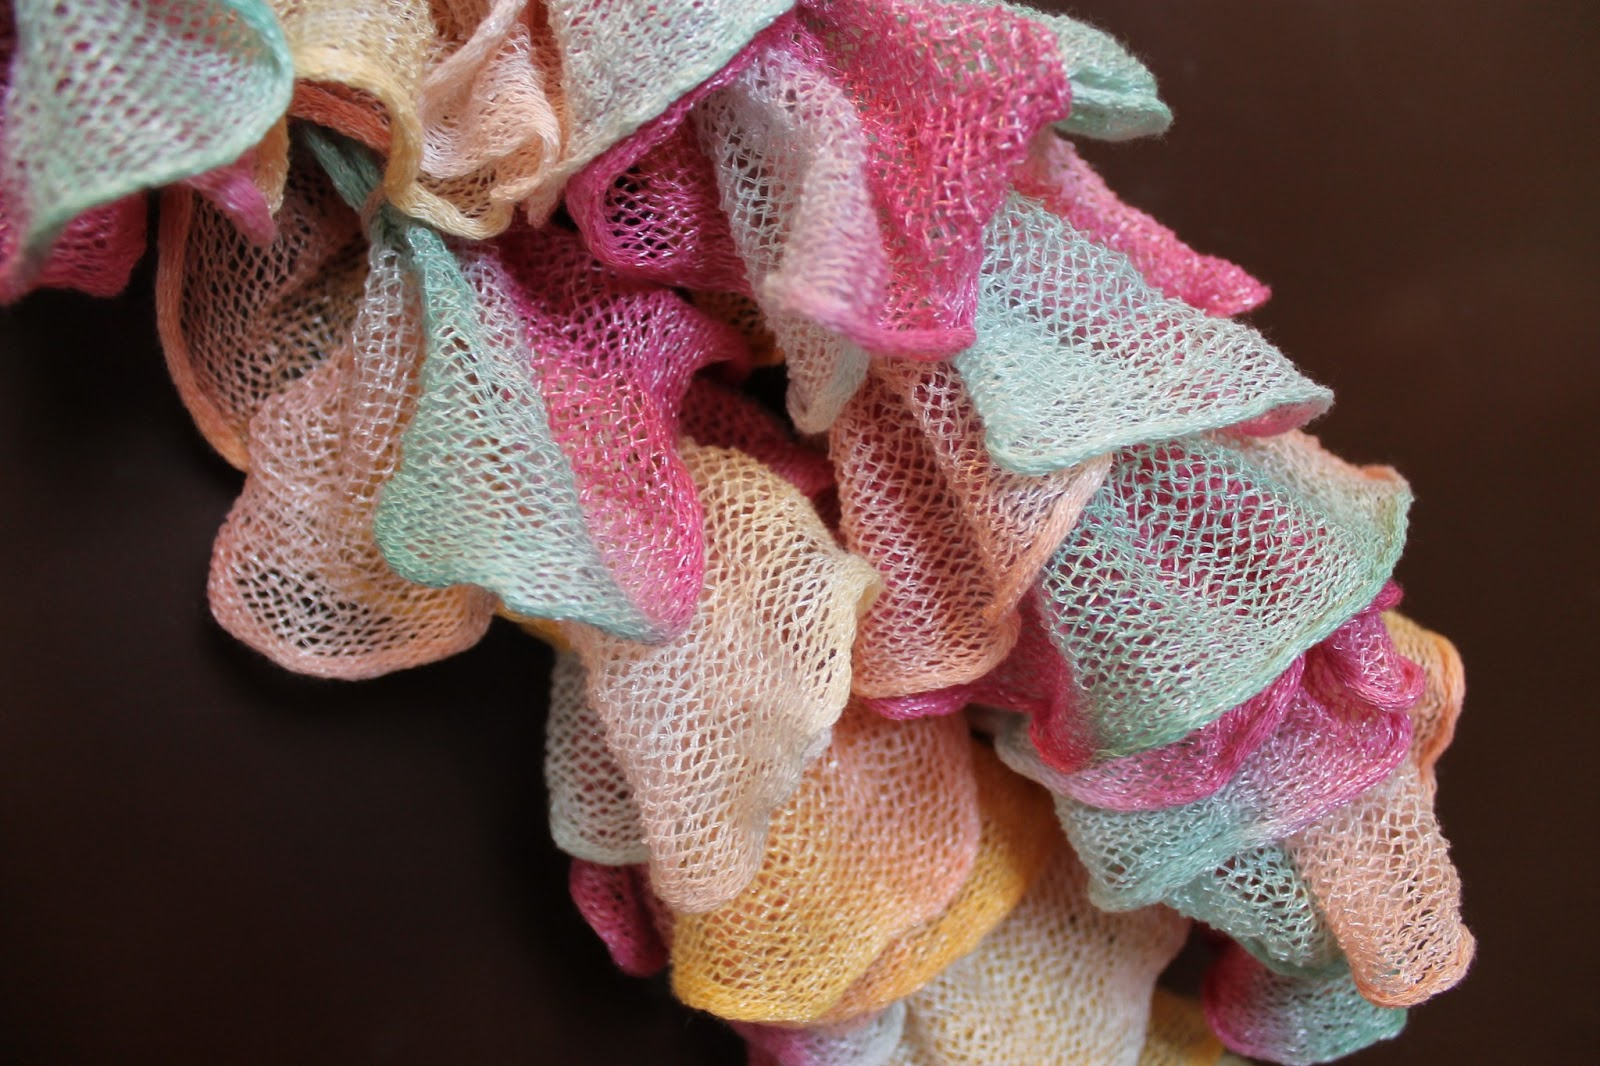 Free Crochet Patterns With Sashay Yarn : Sashay Yarn Patterns Flamenco submited images Pic2Fly